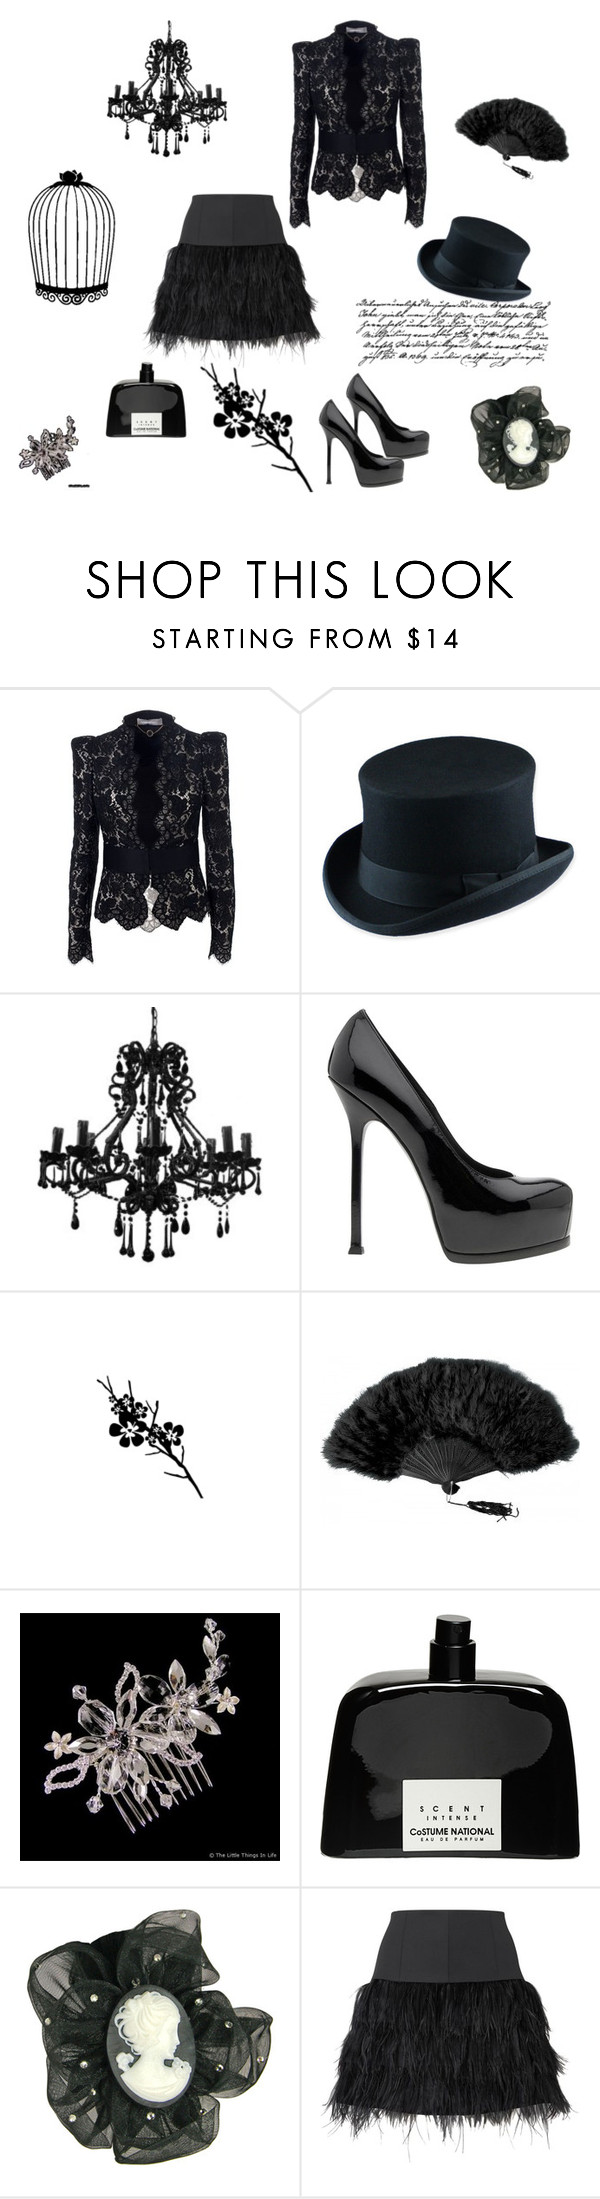 """""""Untitled"""" by bittermoon ❤ liked on Polyvore featuring STELLA McCARTNEY, JOHN BULL, Chandelier, Yves Saint Laurent, COSTUME NATIONAL, Tarina Tarantino, Oasis and Tim Holtz"""